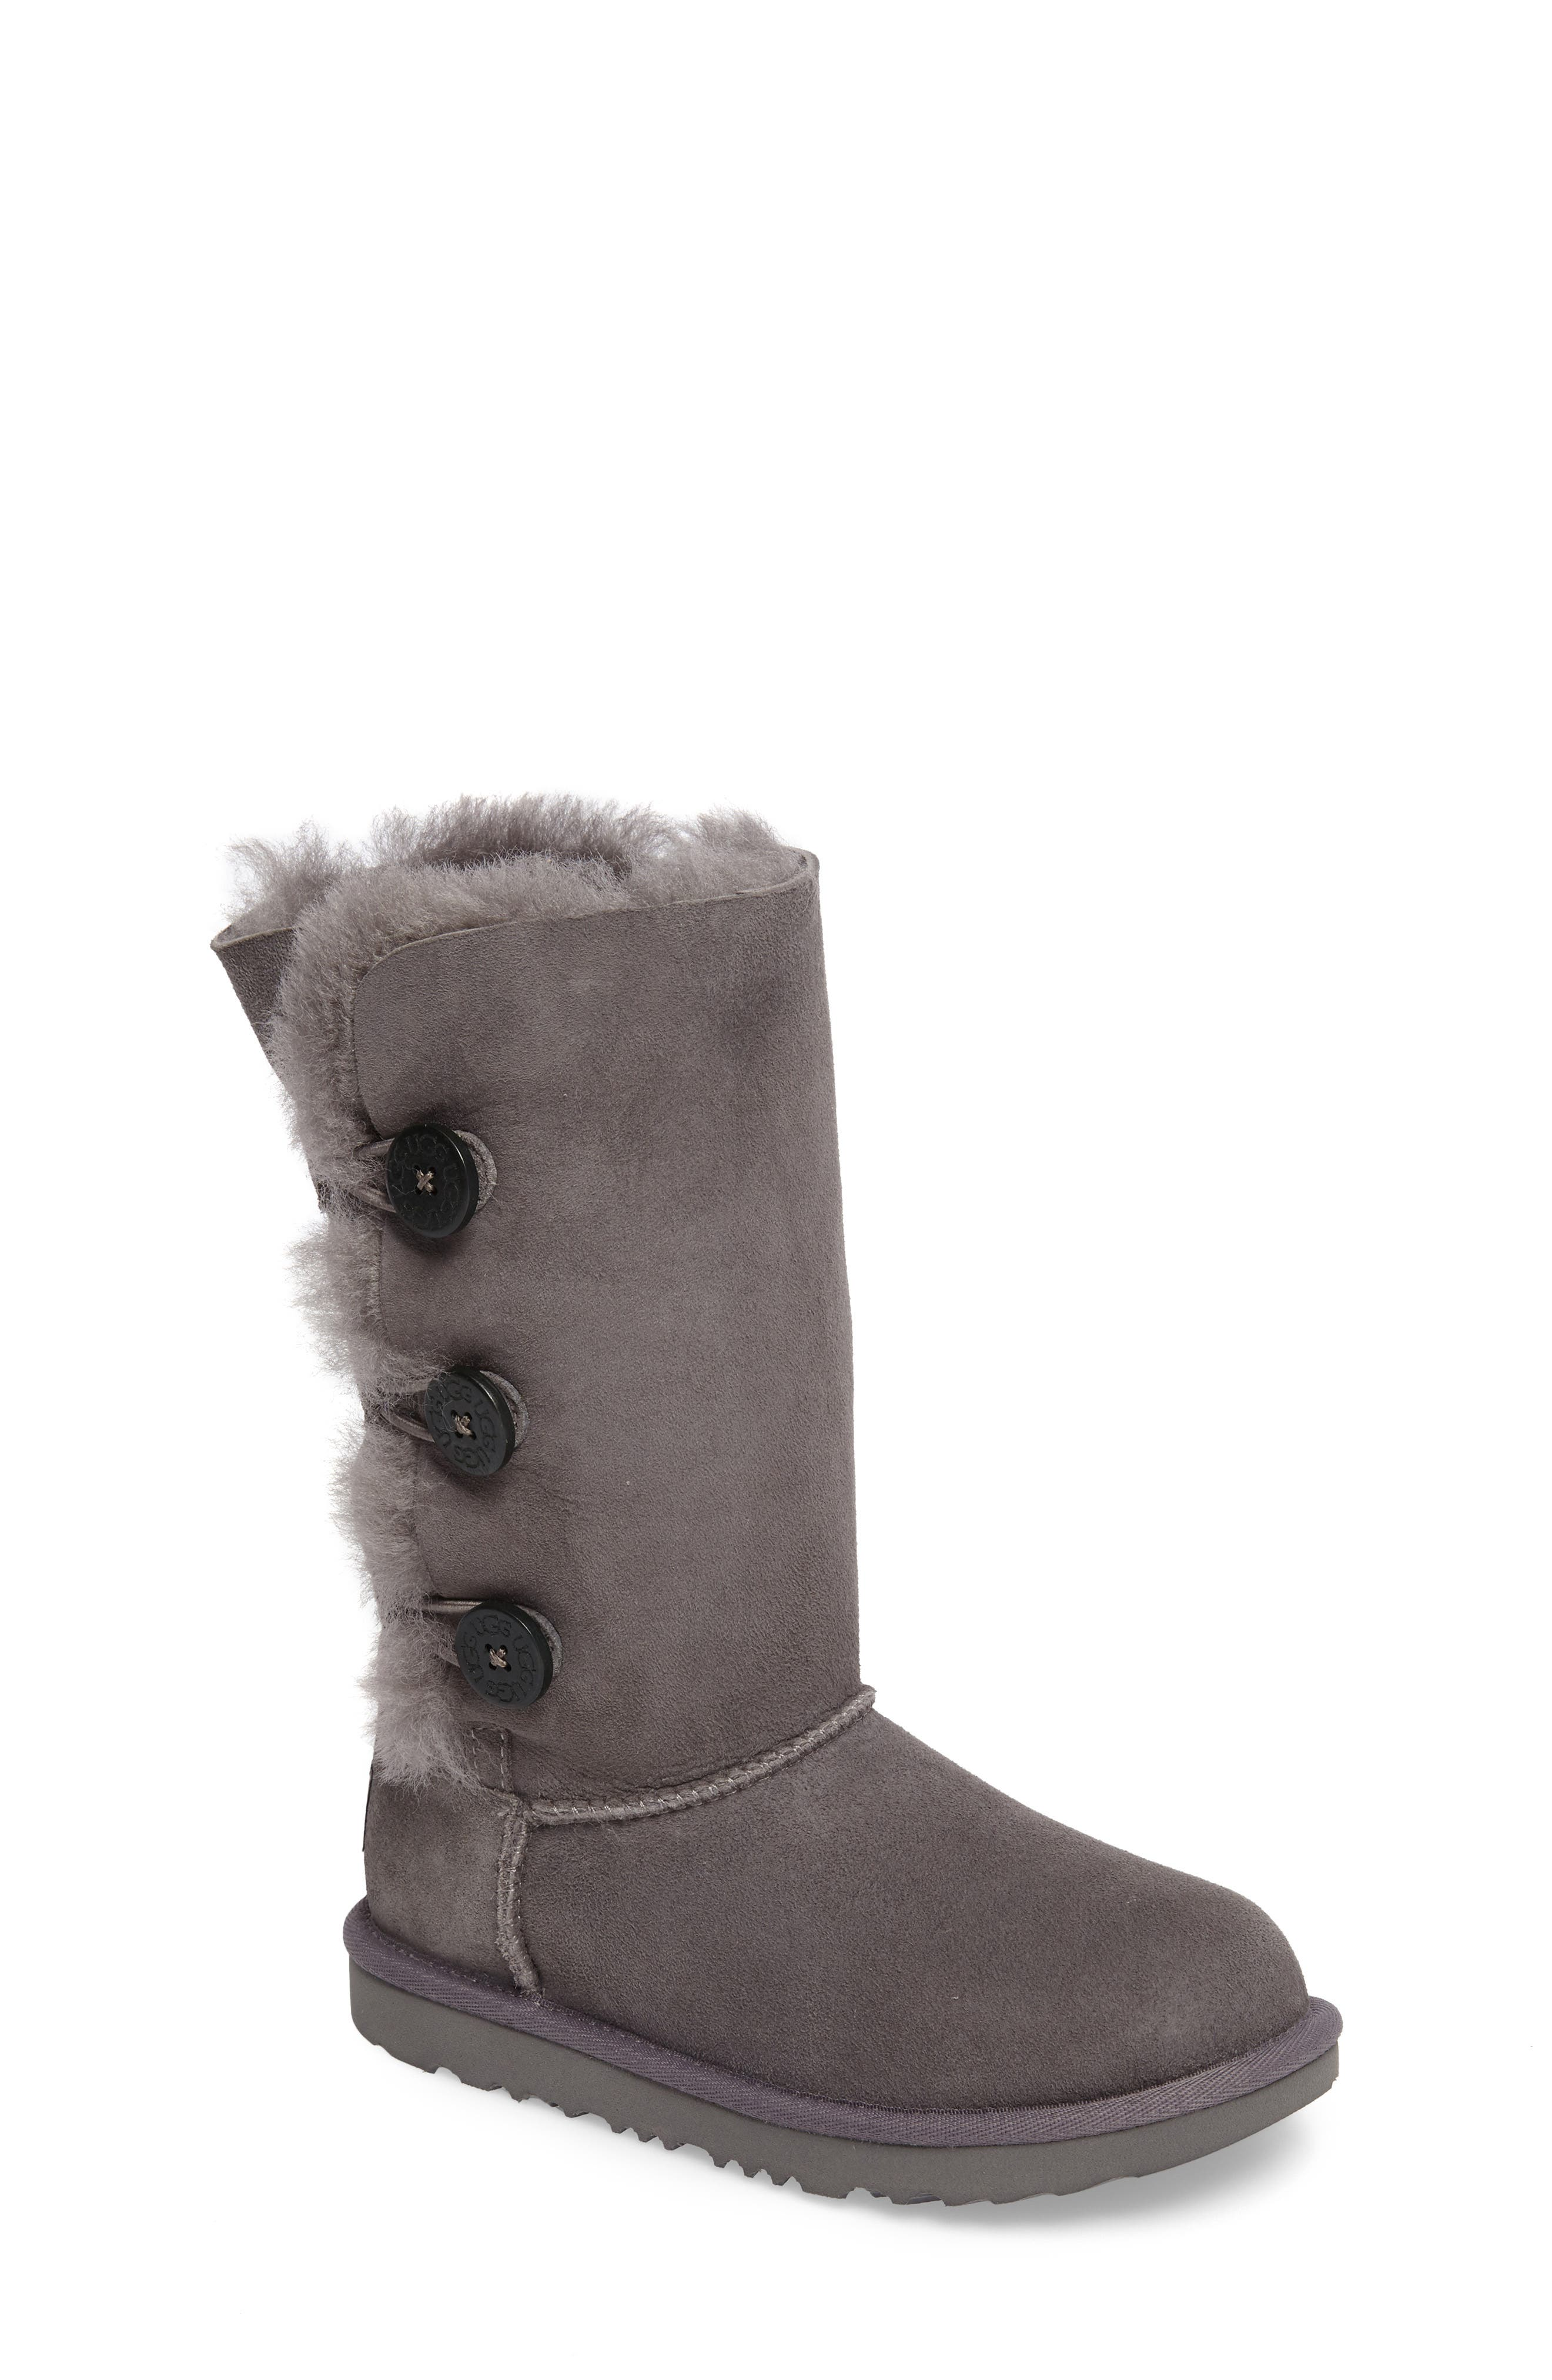 Alternate Image 1 Selected - UGG® Bailey Button Triplet II Genuine Shearling Boot (Little Kid & Big Kid)